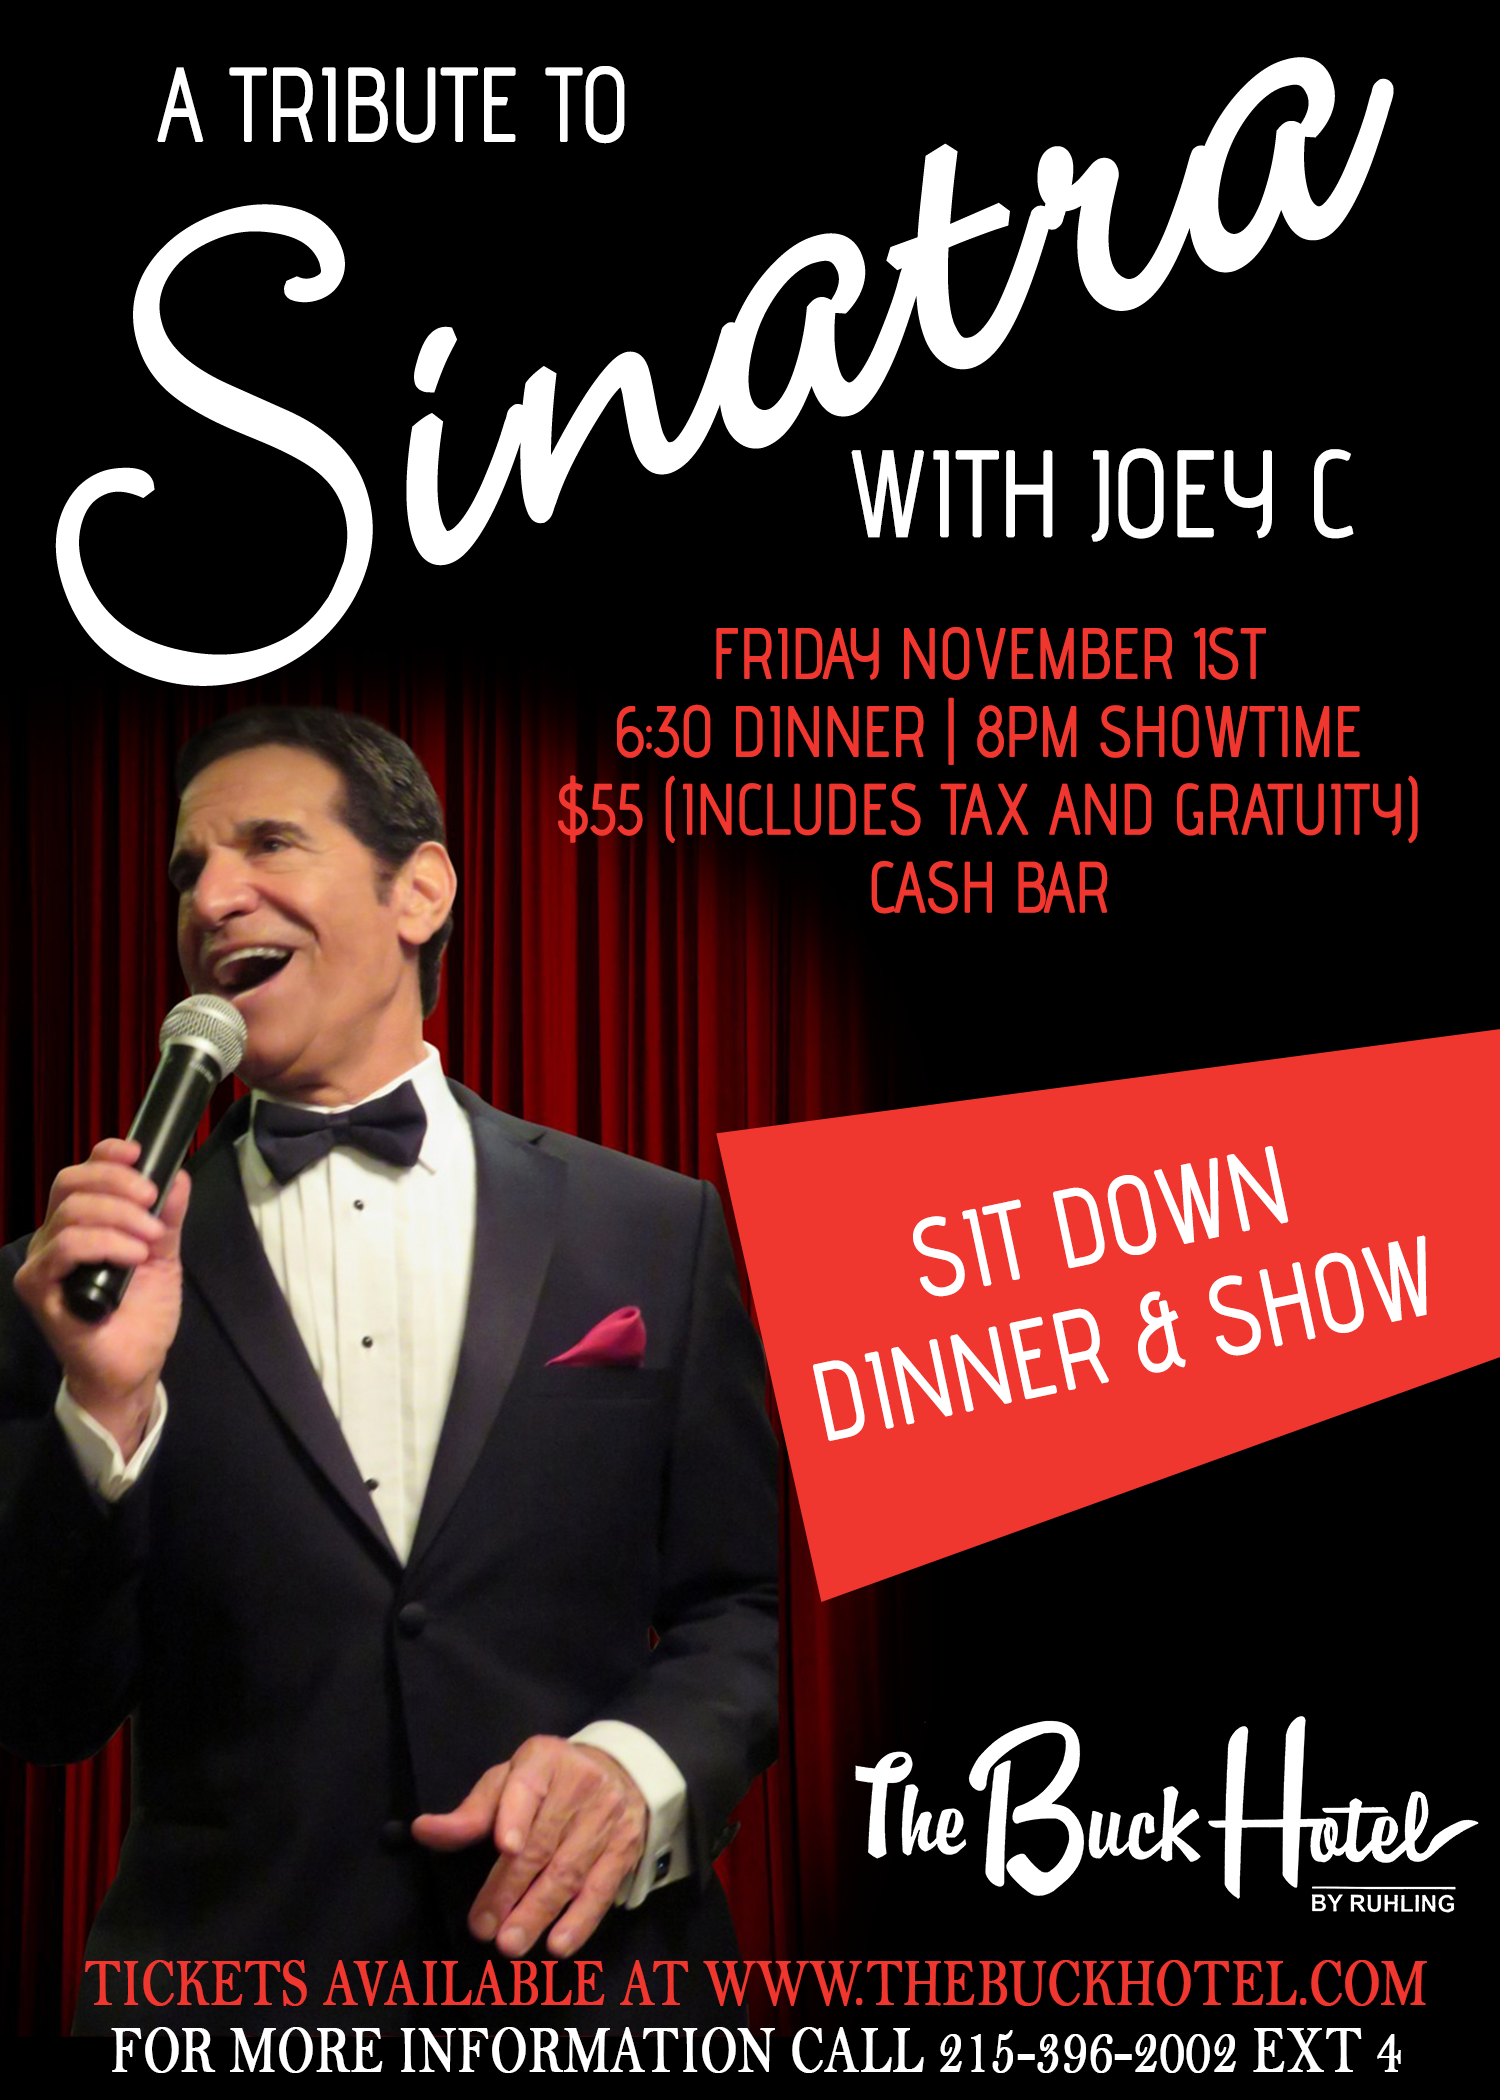 a tribute to sinatra friday november 1st 630 dinner